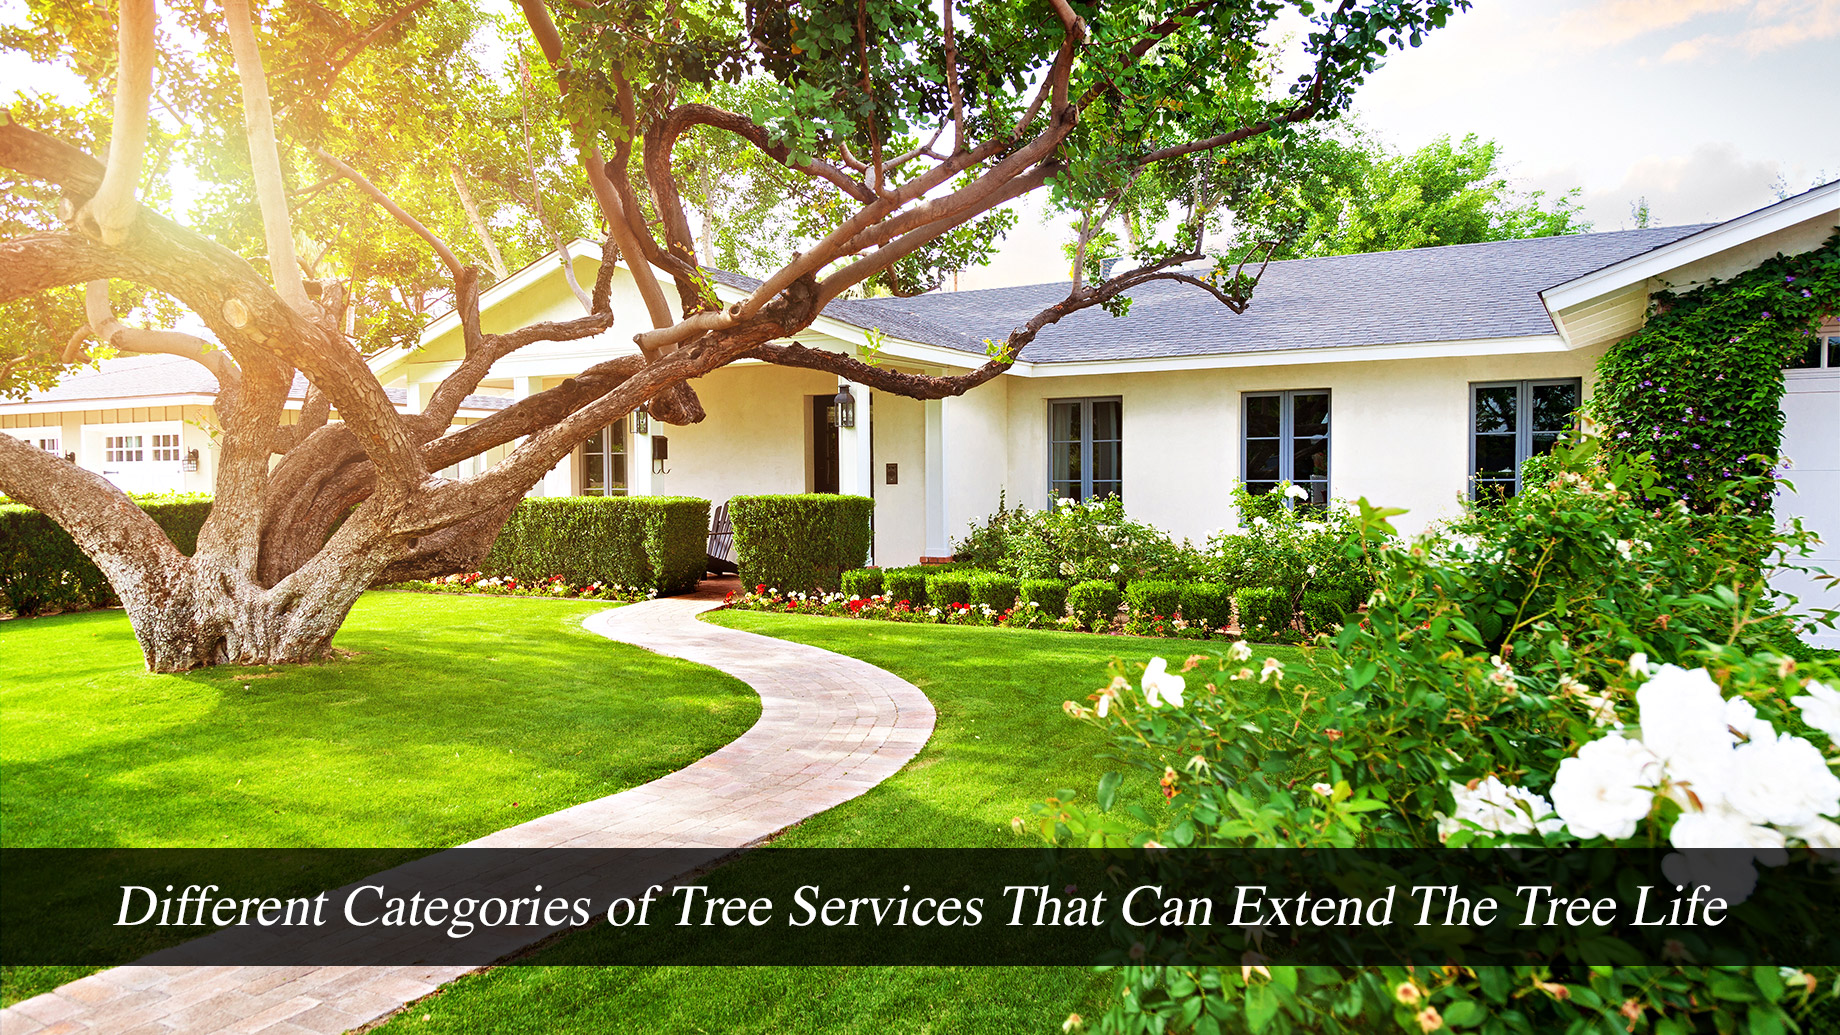 Different Categories of Tree Services That Can Extend The Tree Life